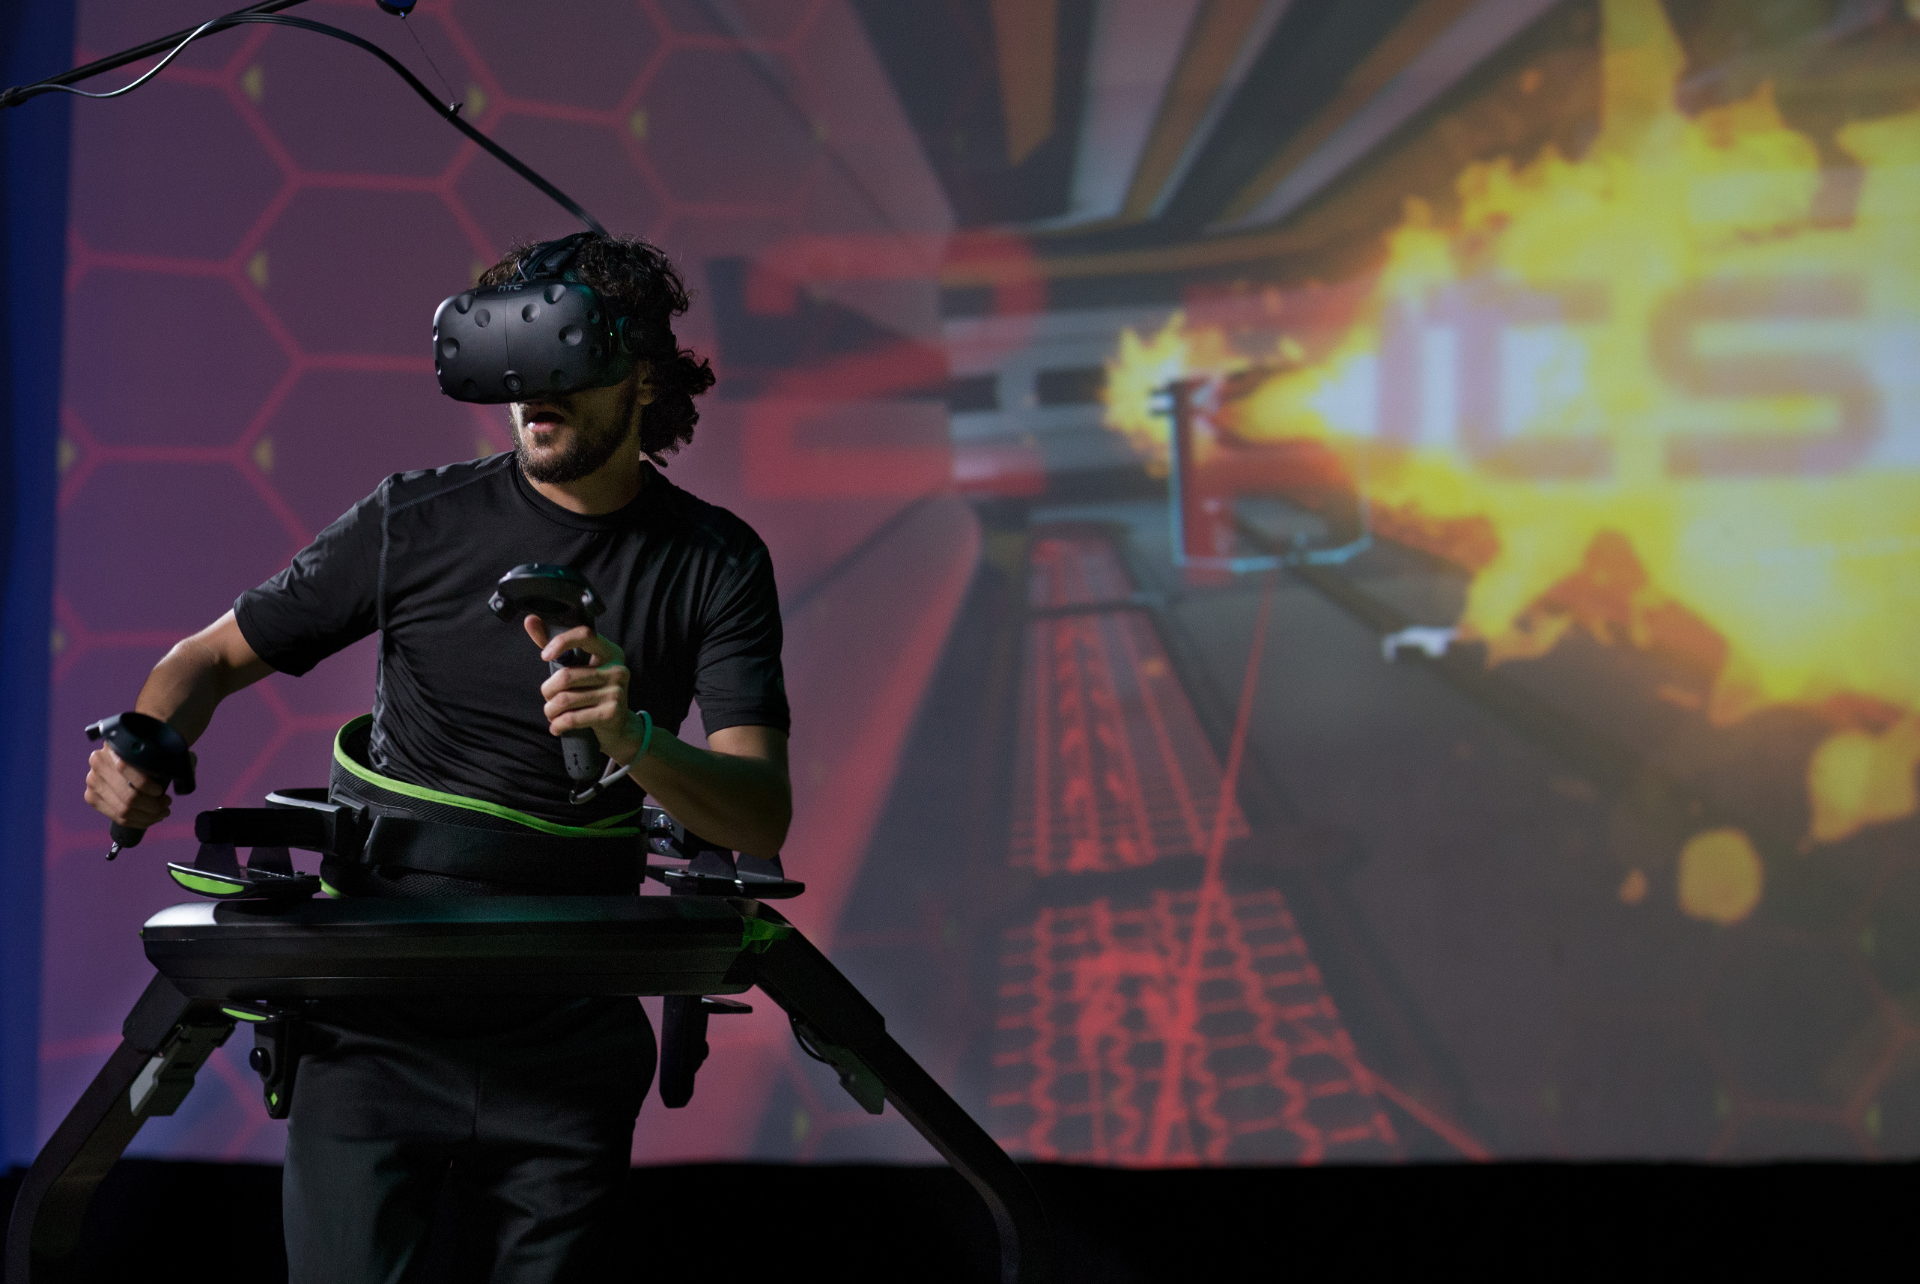 Omniverse VR Gaming Platform Surpasses 1 Million Plays and Launches 20th Game